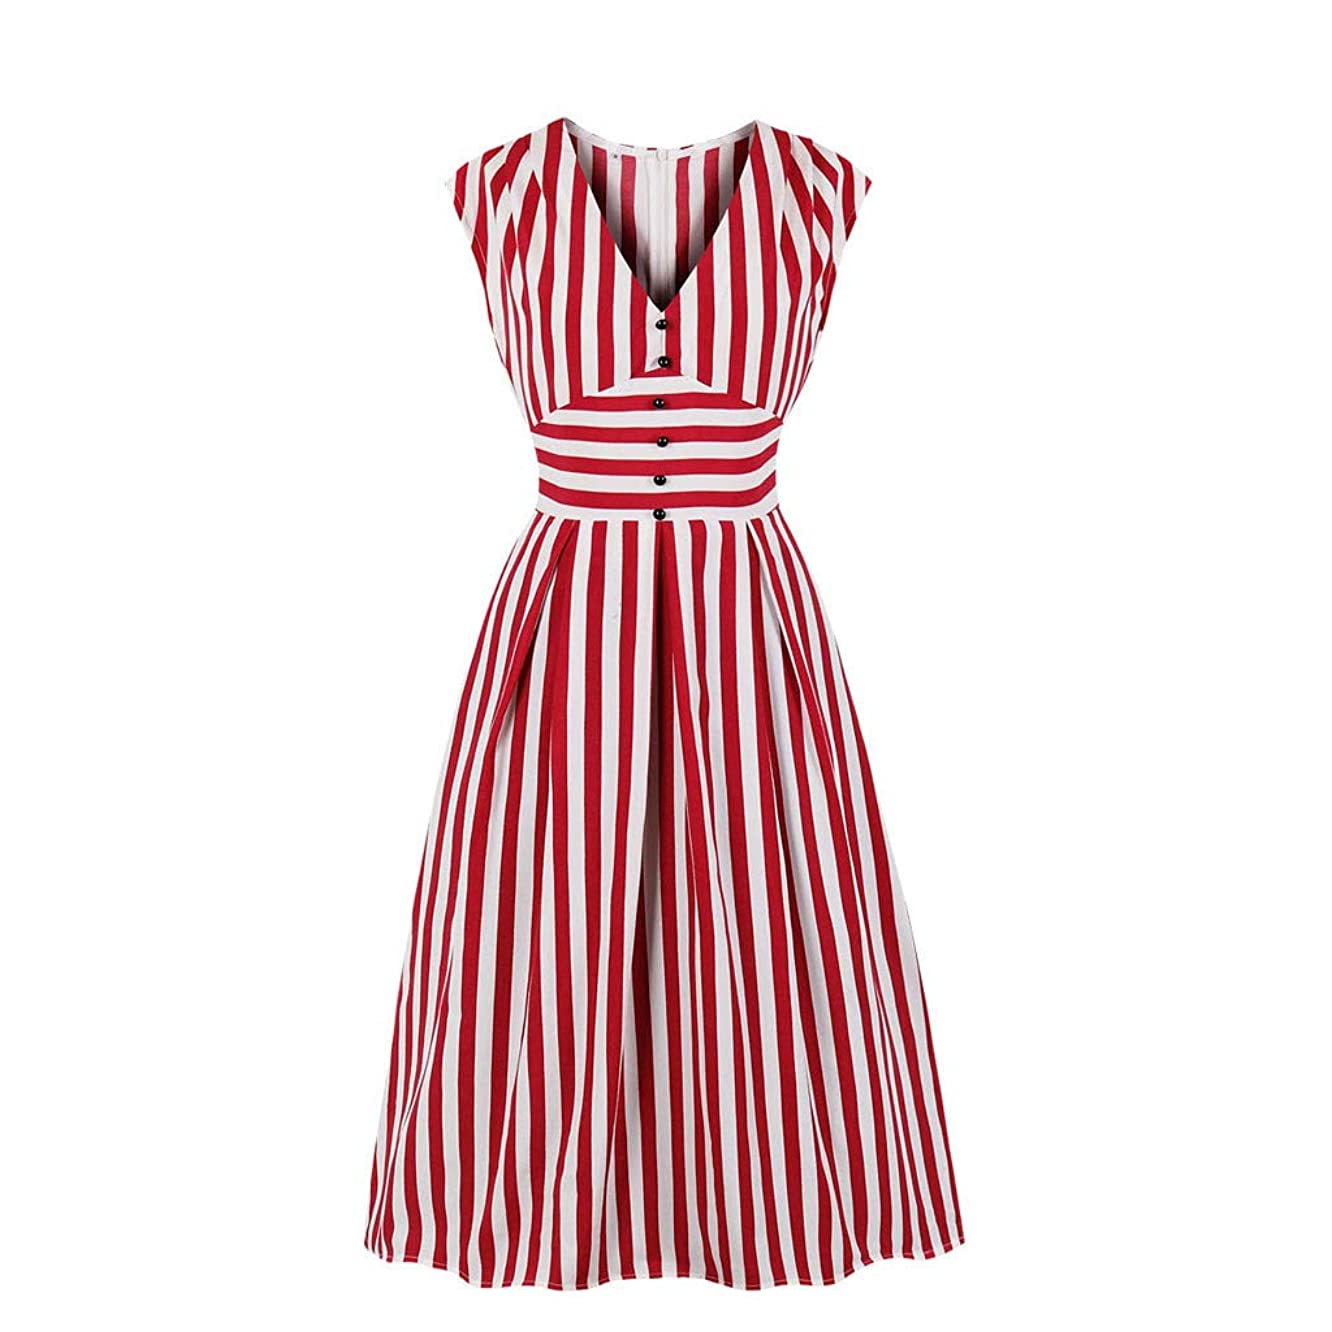 Women Casual Striped Printed Sleeveless V-Neck Botton Vintage Retro Ball Gown Dress (Red, S)